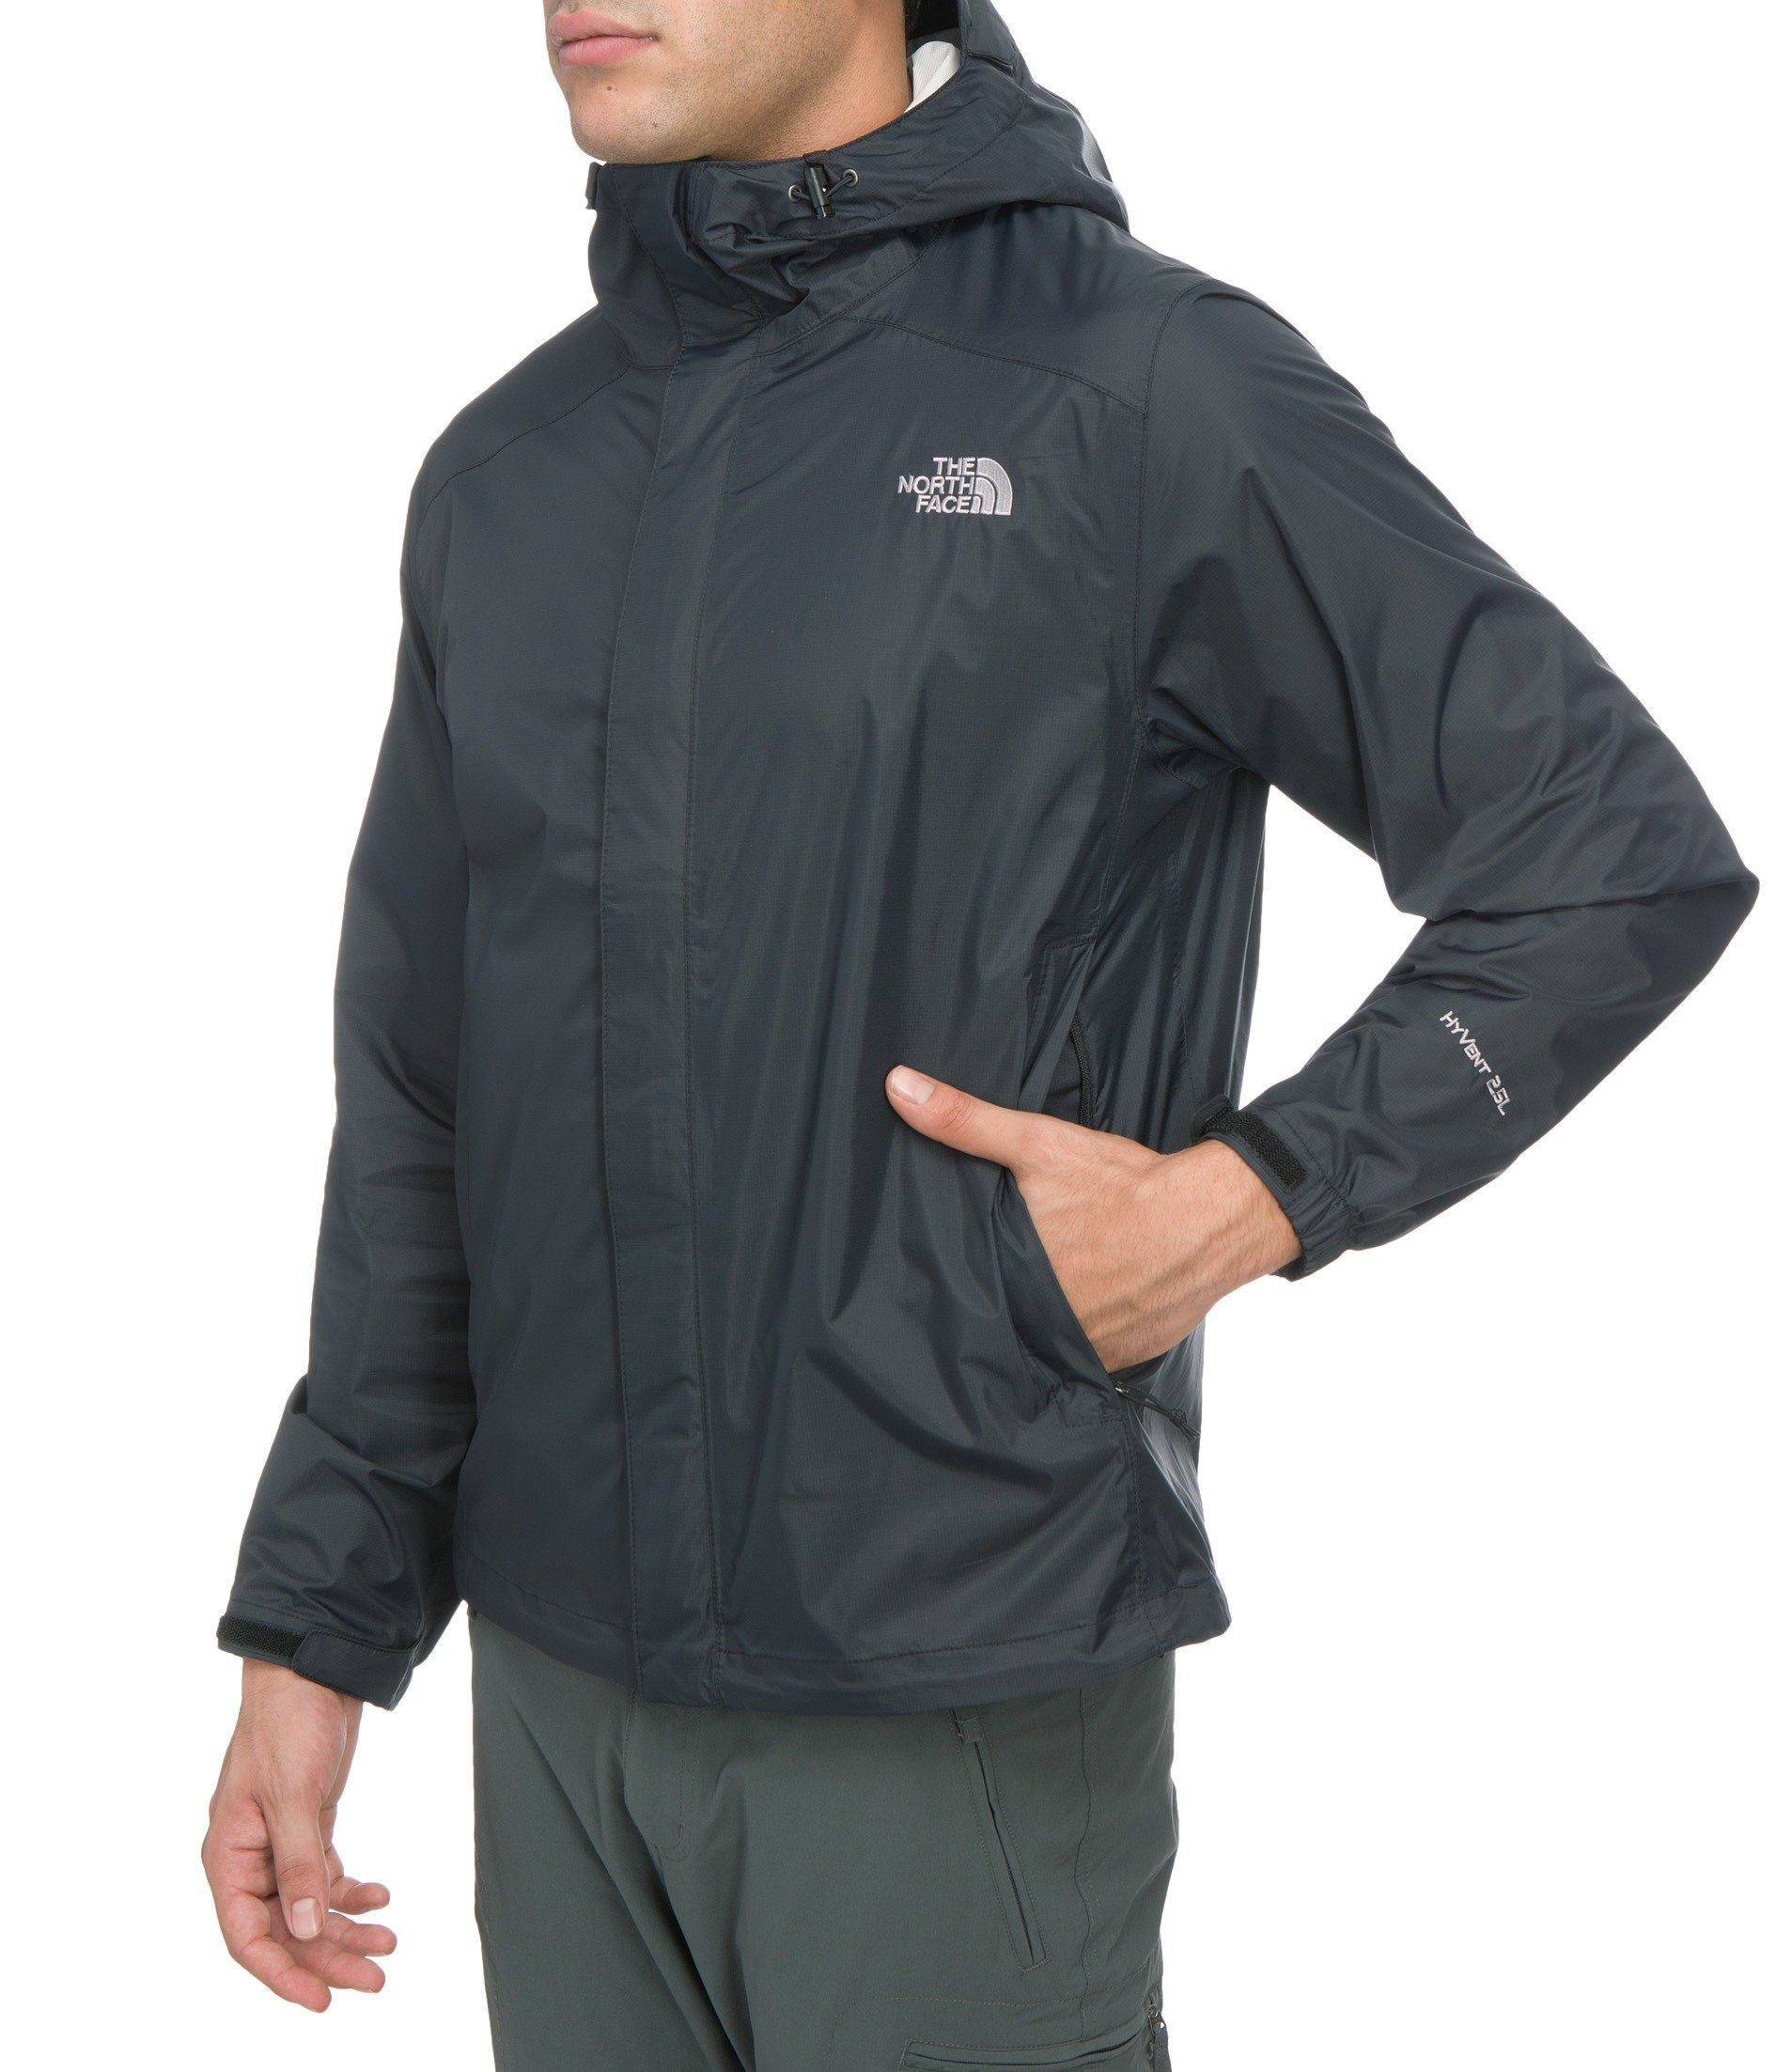 The north face North face galaxy jacket men på billigsport24